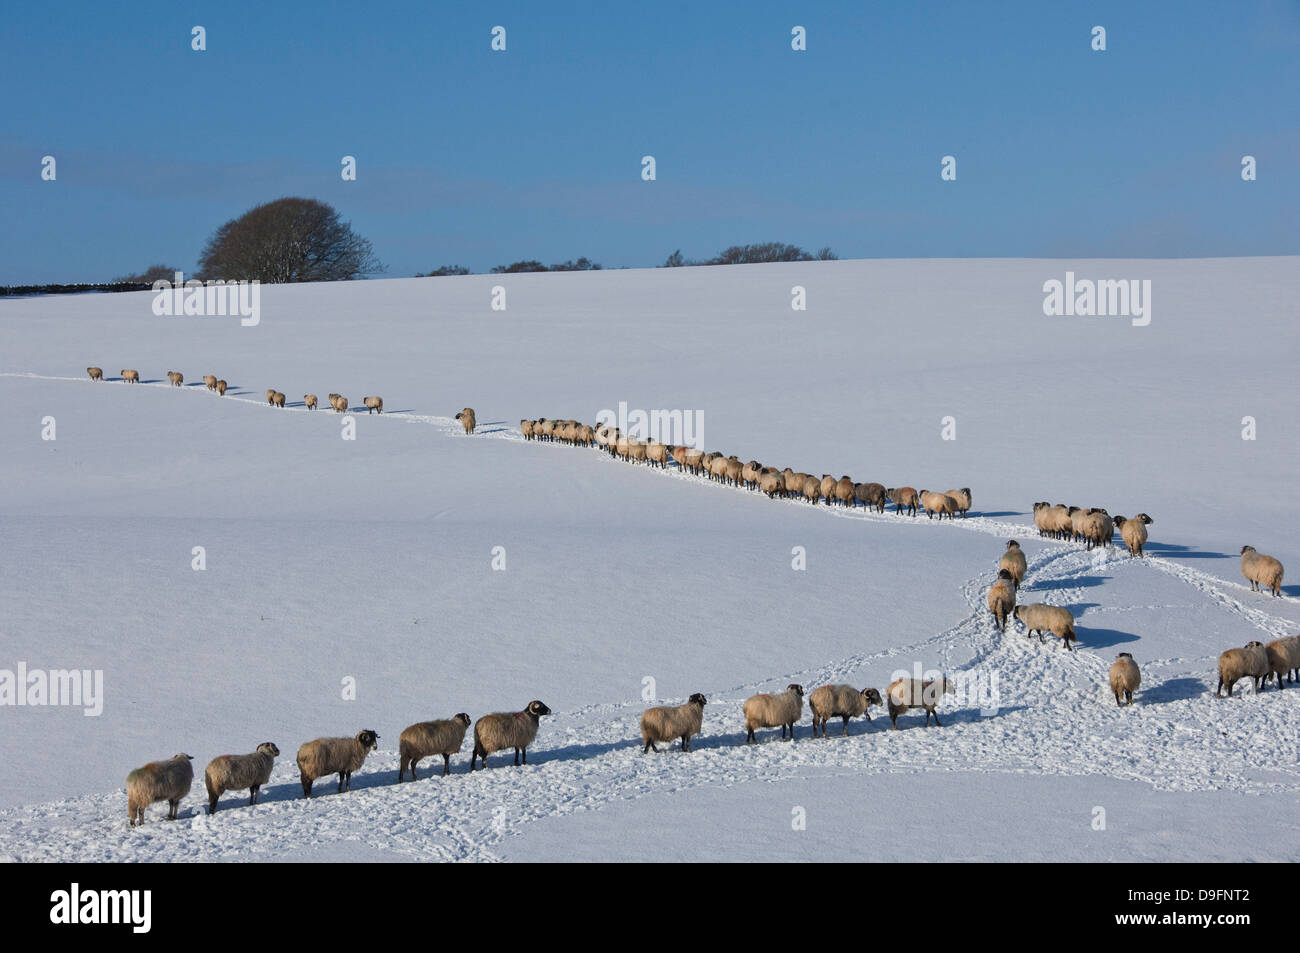 A file of sheep across snow, Lower Pennines, Eden Valley, Cumbria, England, UK - Stock Image